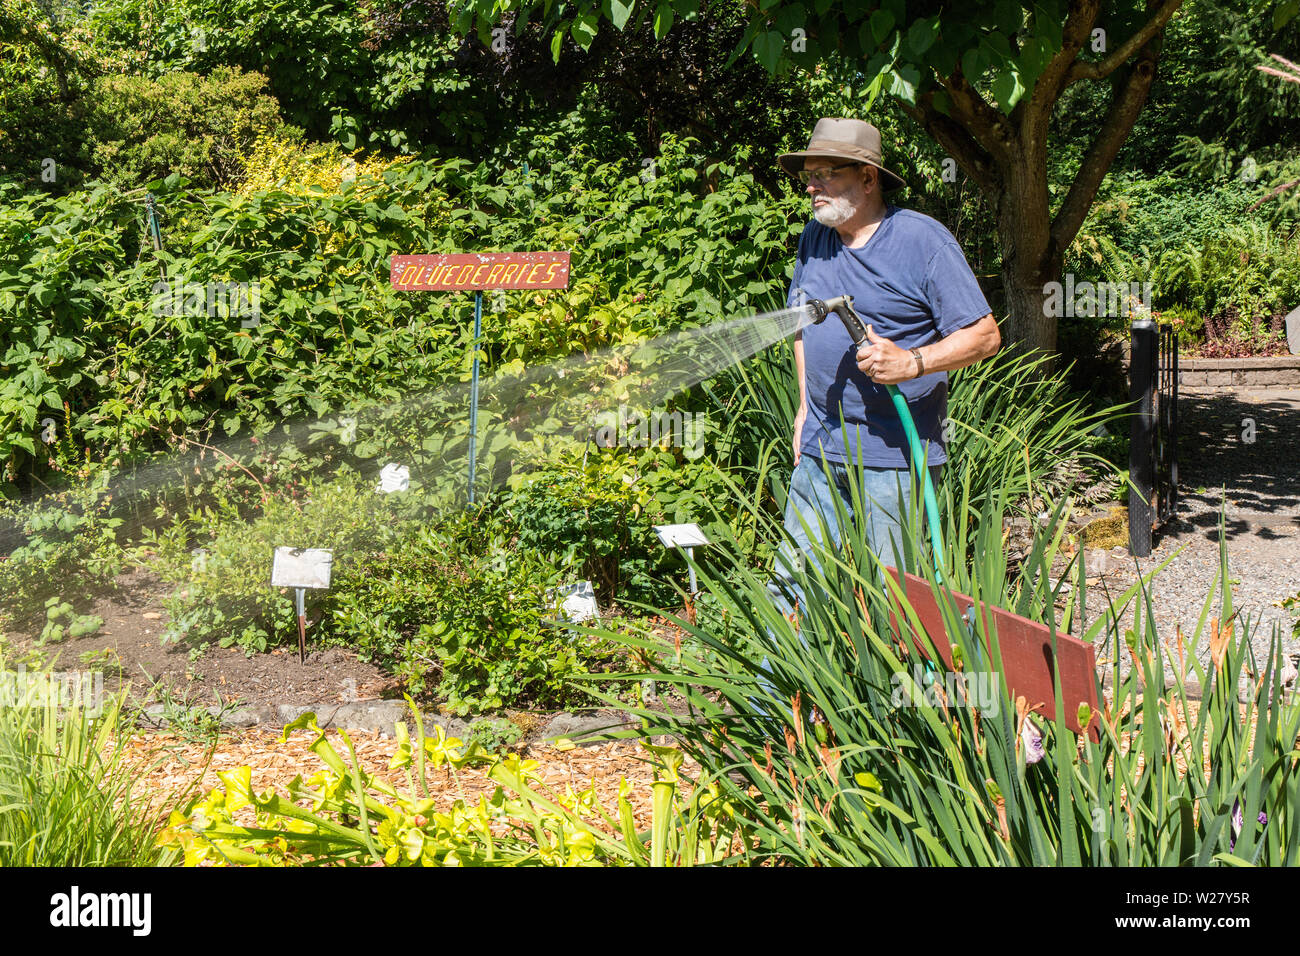 Man hand-watering his vegetable and flower garden in Bellevue, Washington, USA - Stock Image